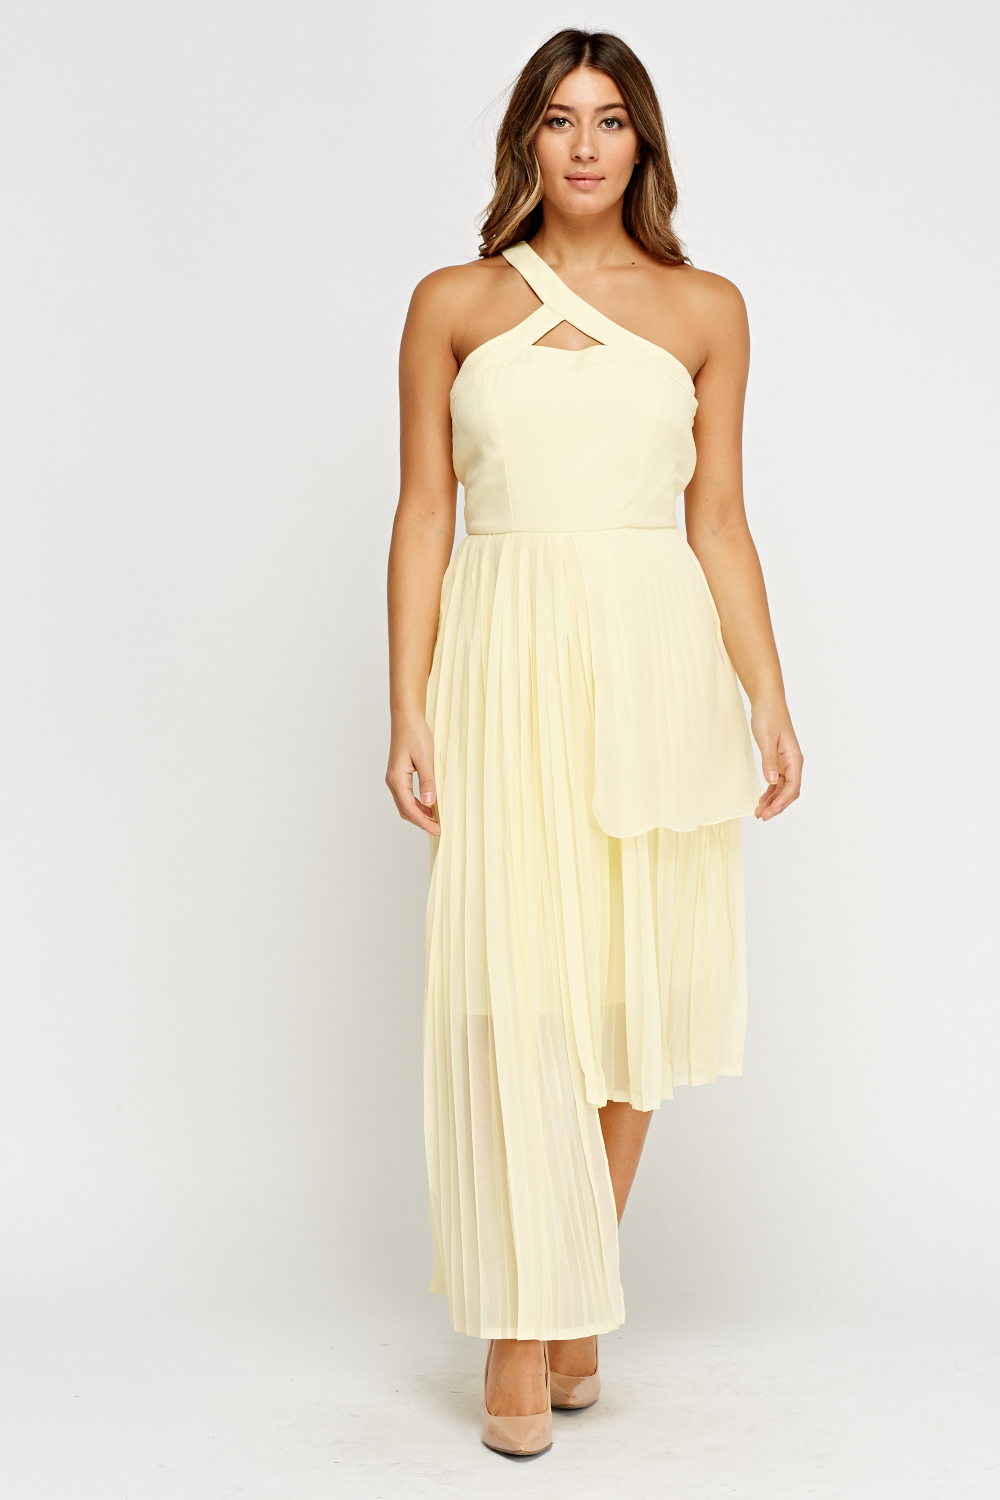 Asymmetric Pleated Light Yellow Dress - Just £5